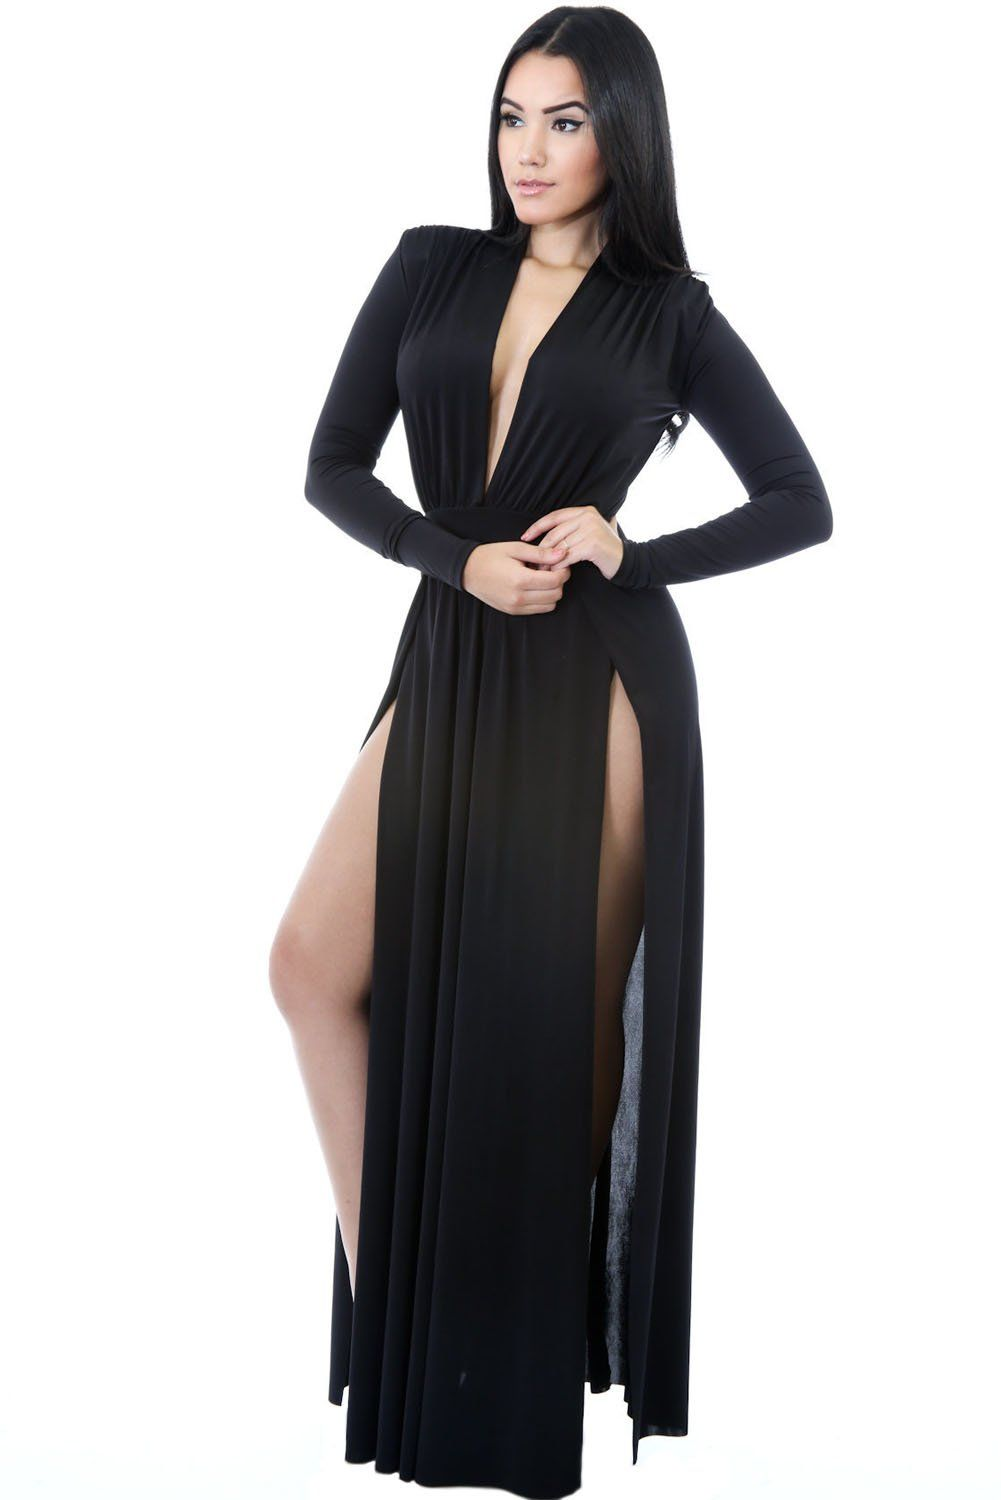 Black super classy long sleeves double slit long maxi dress by